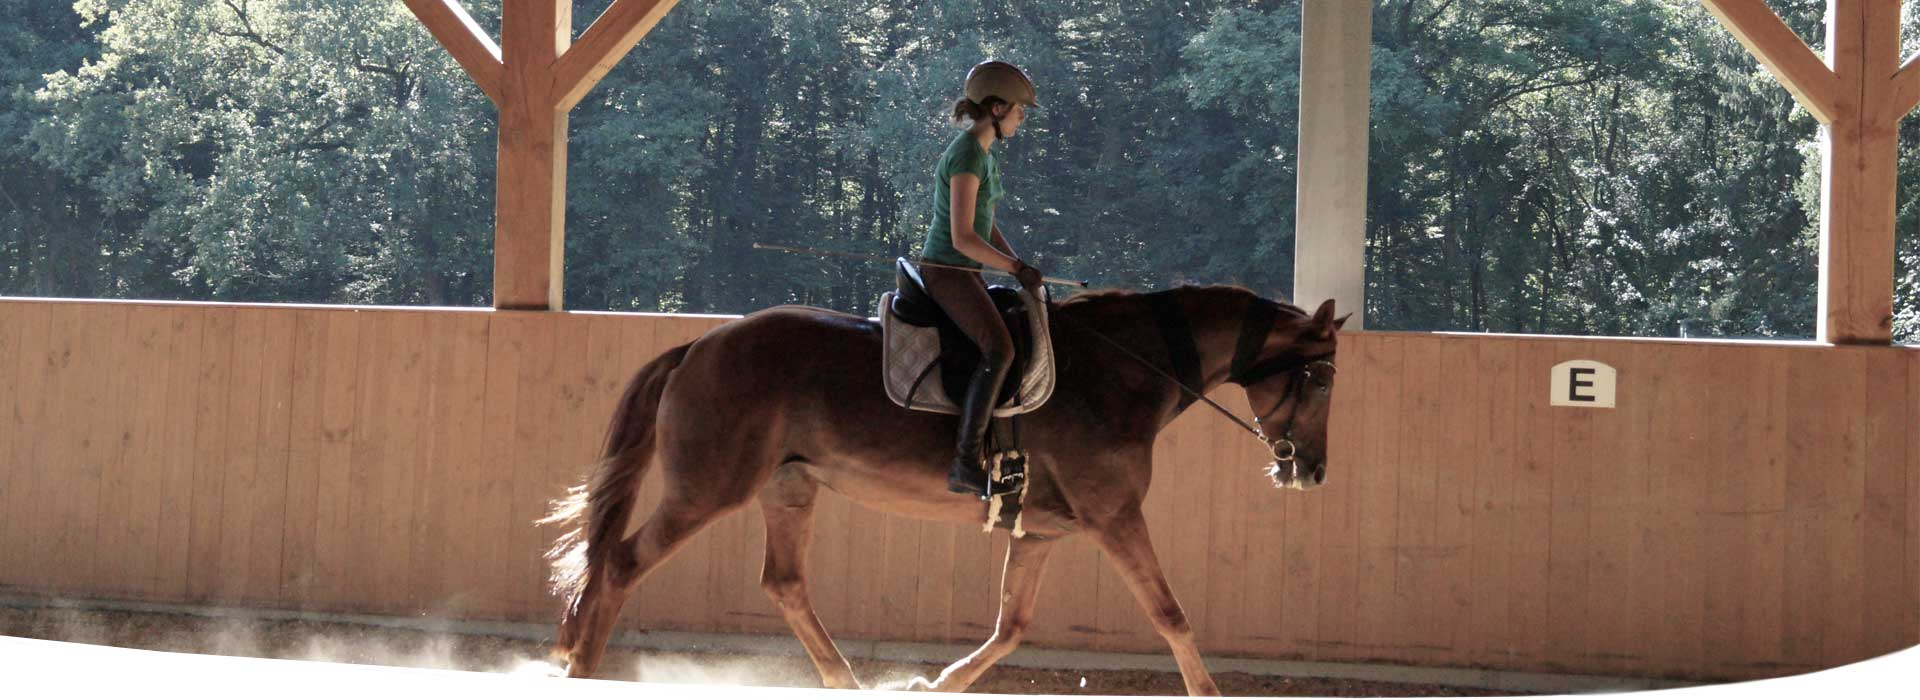 connected-riding-trainer-deutschland-reiten